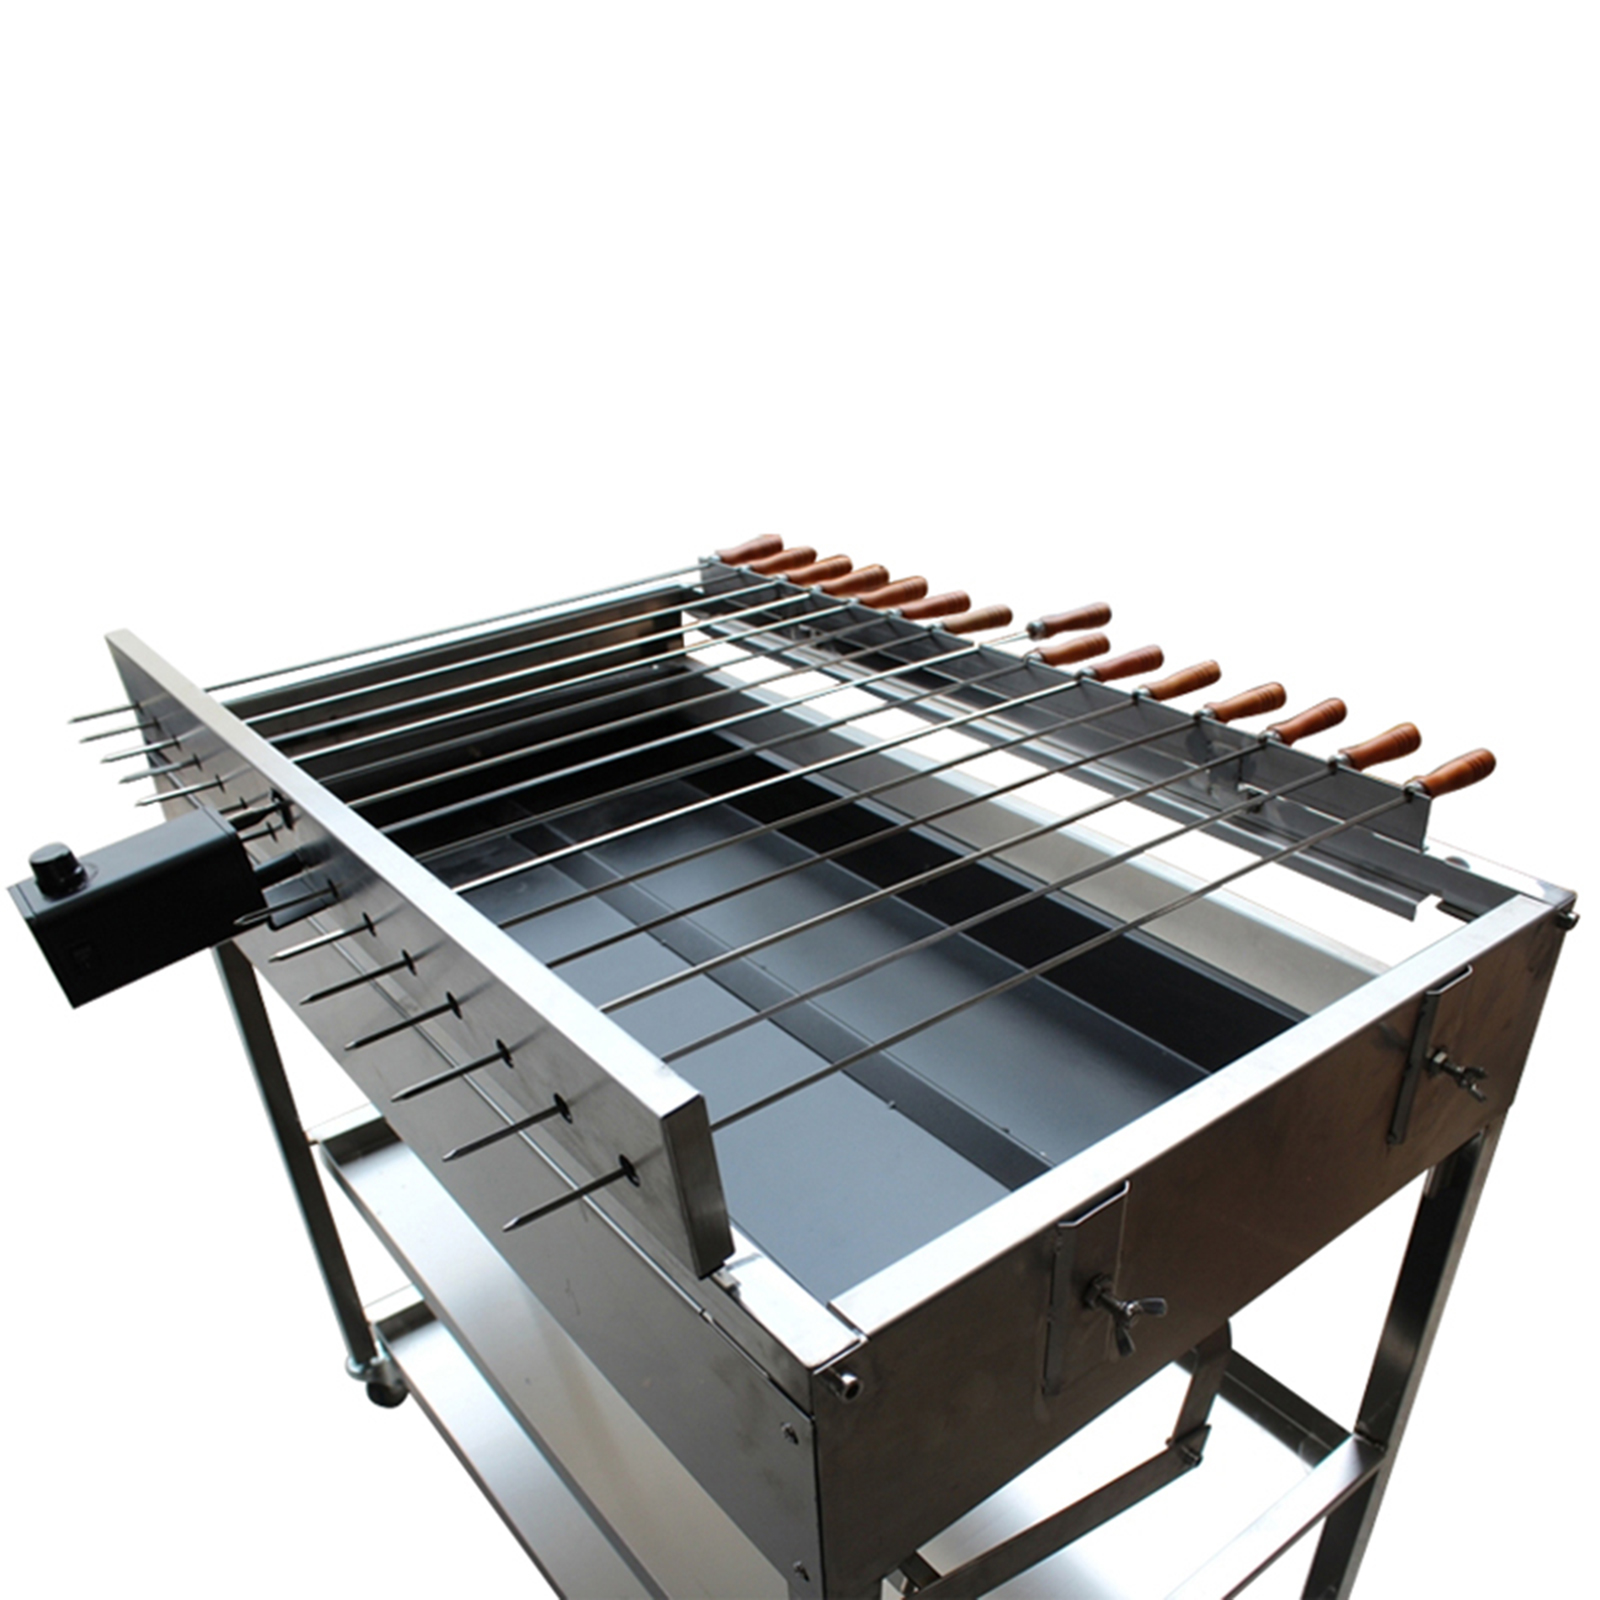 Stainless Steel Extra Large Heavy Duty Cyprus Grill Bbq